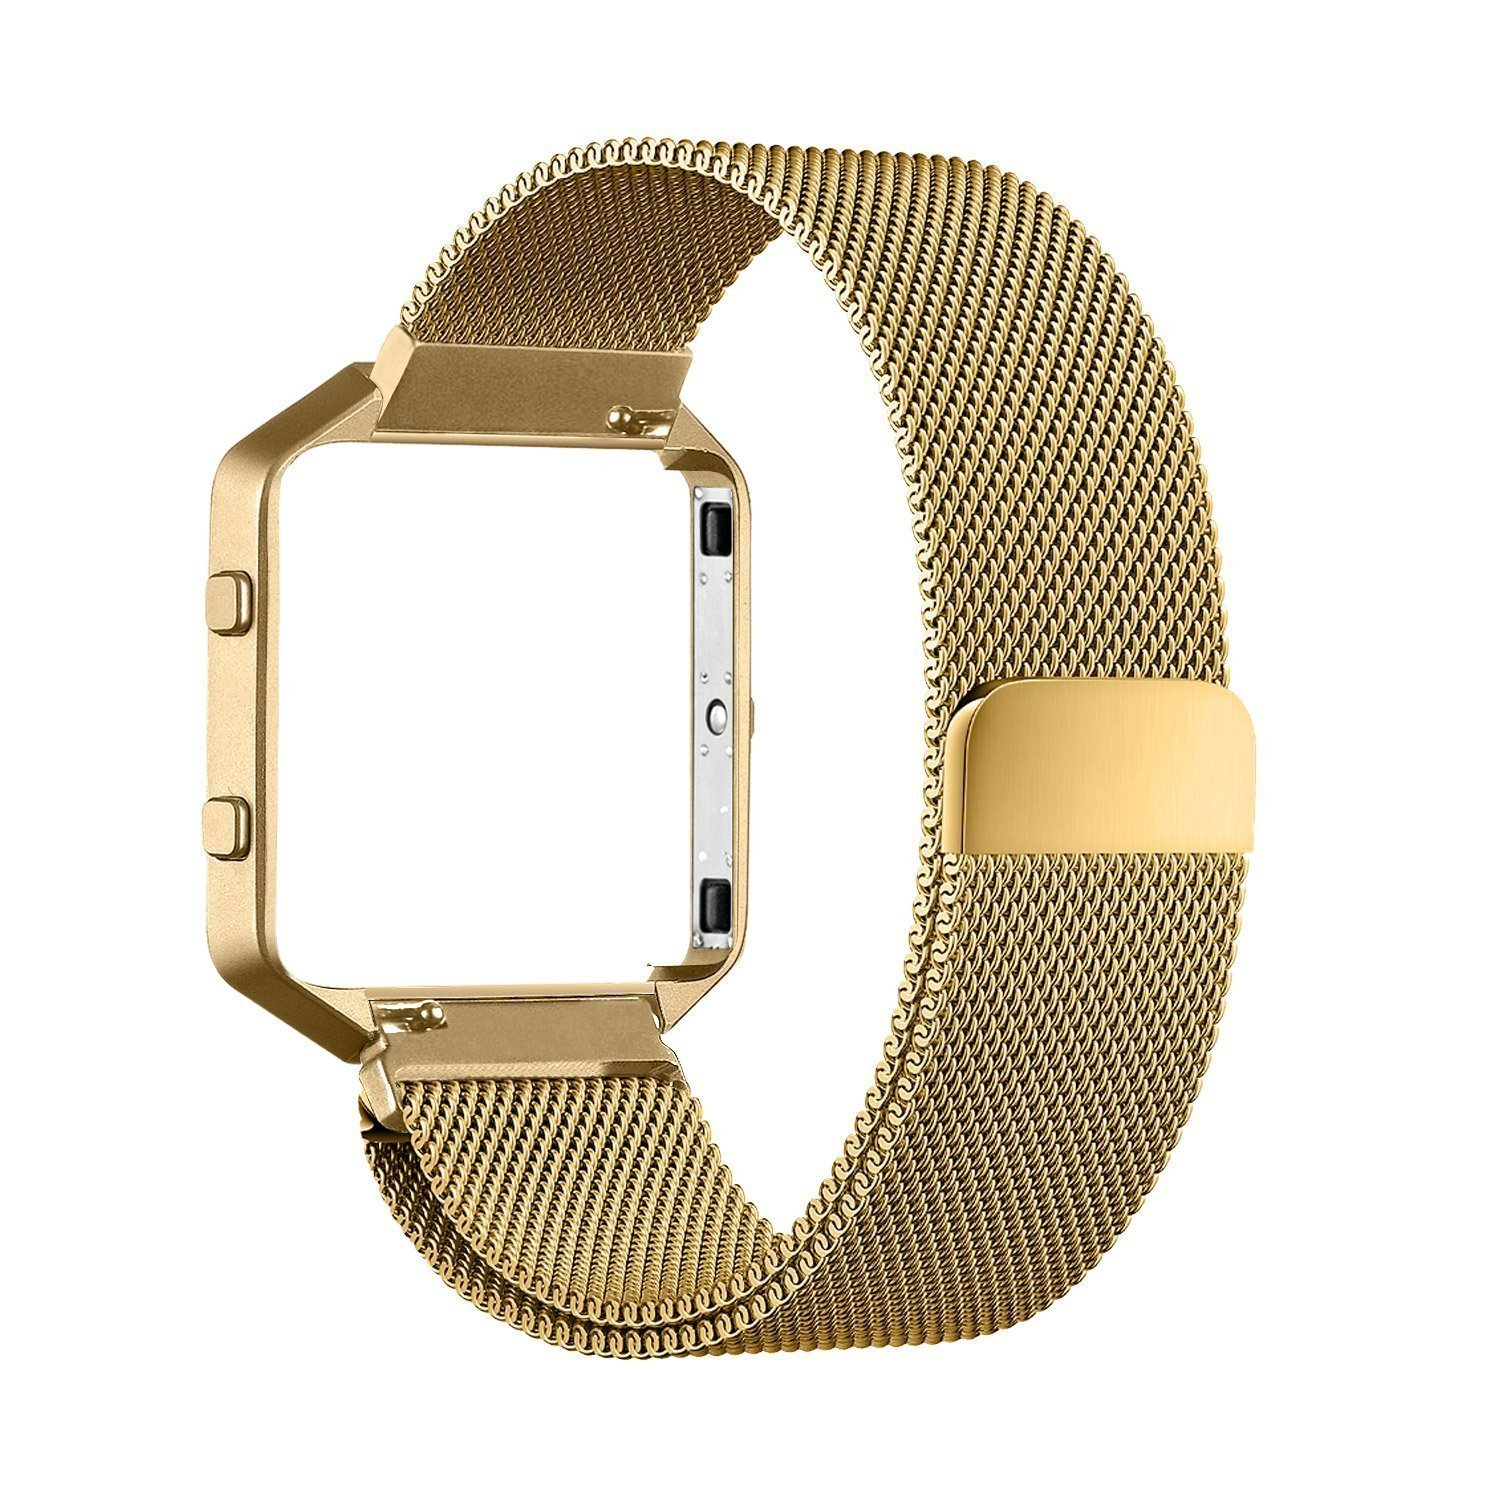 Fitbit Blaze Accessory Band,Large(6.3-9.1 in),Oitom Frame Housing+Milanese loop stainless steel Bracelet Strap for Fitbit Blaze Smart Fitness Watch (Gold Frame+Loop)